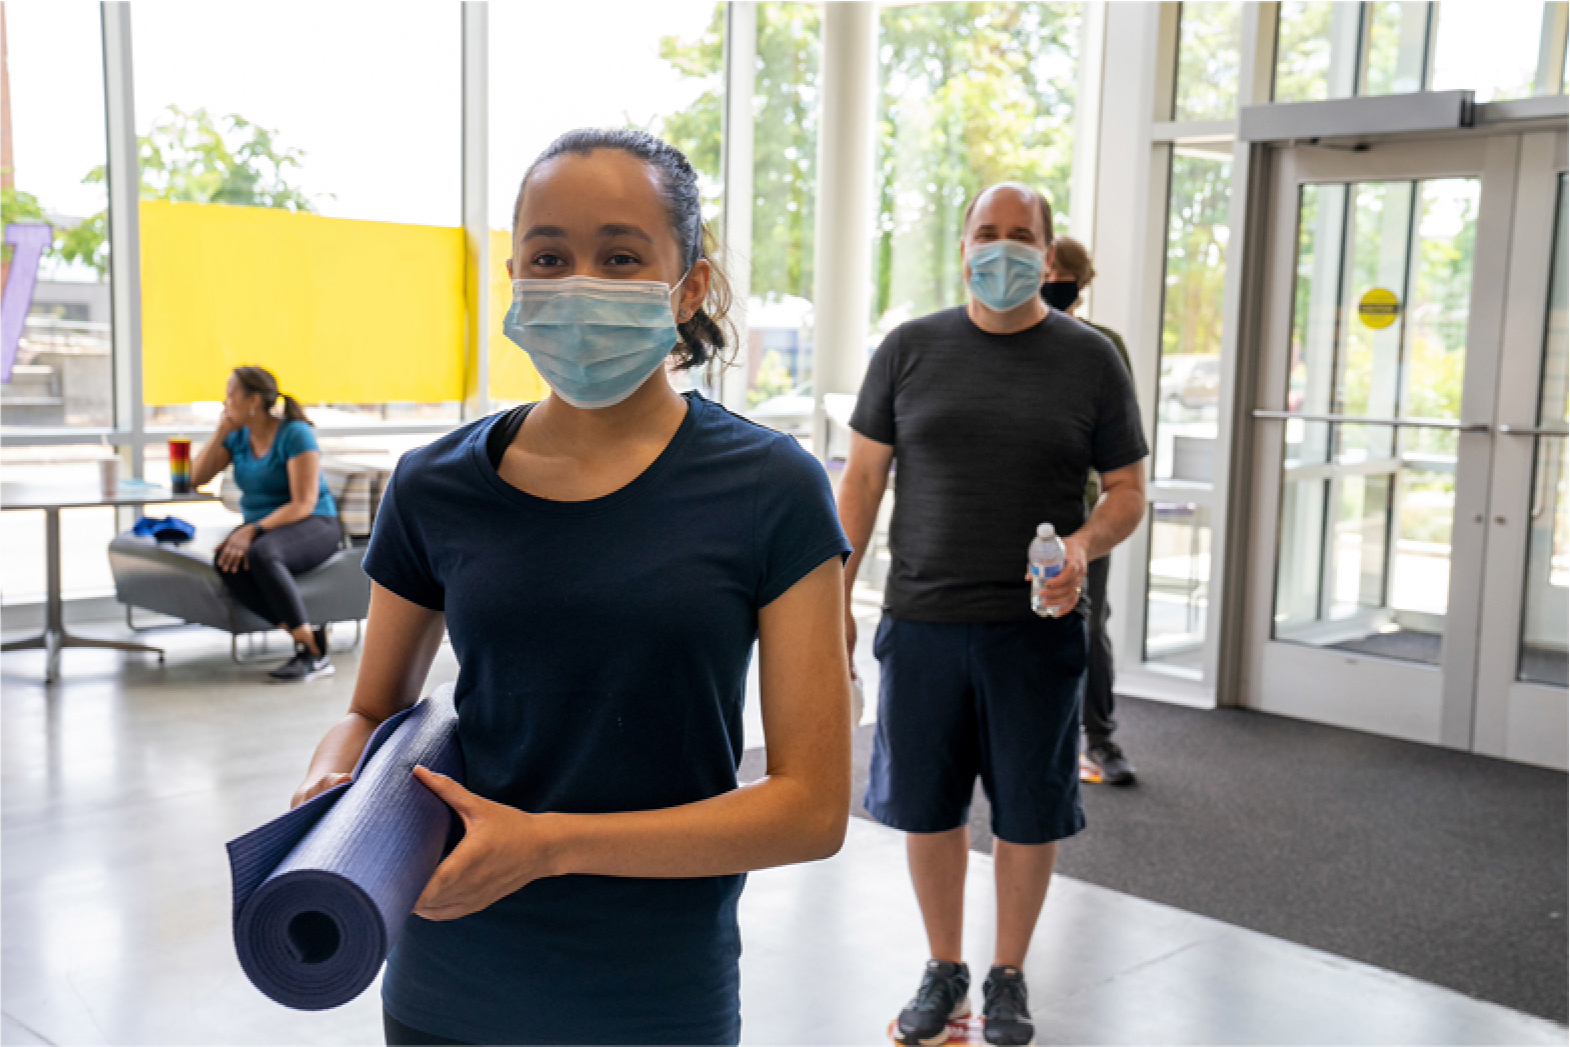 Henry County YMCA members wearing masks and coming for group exercise classes.